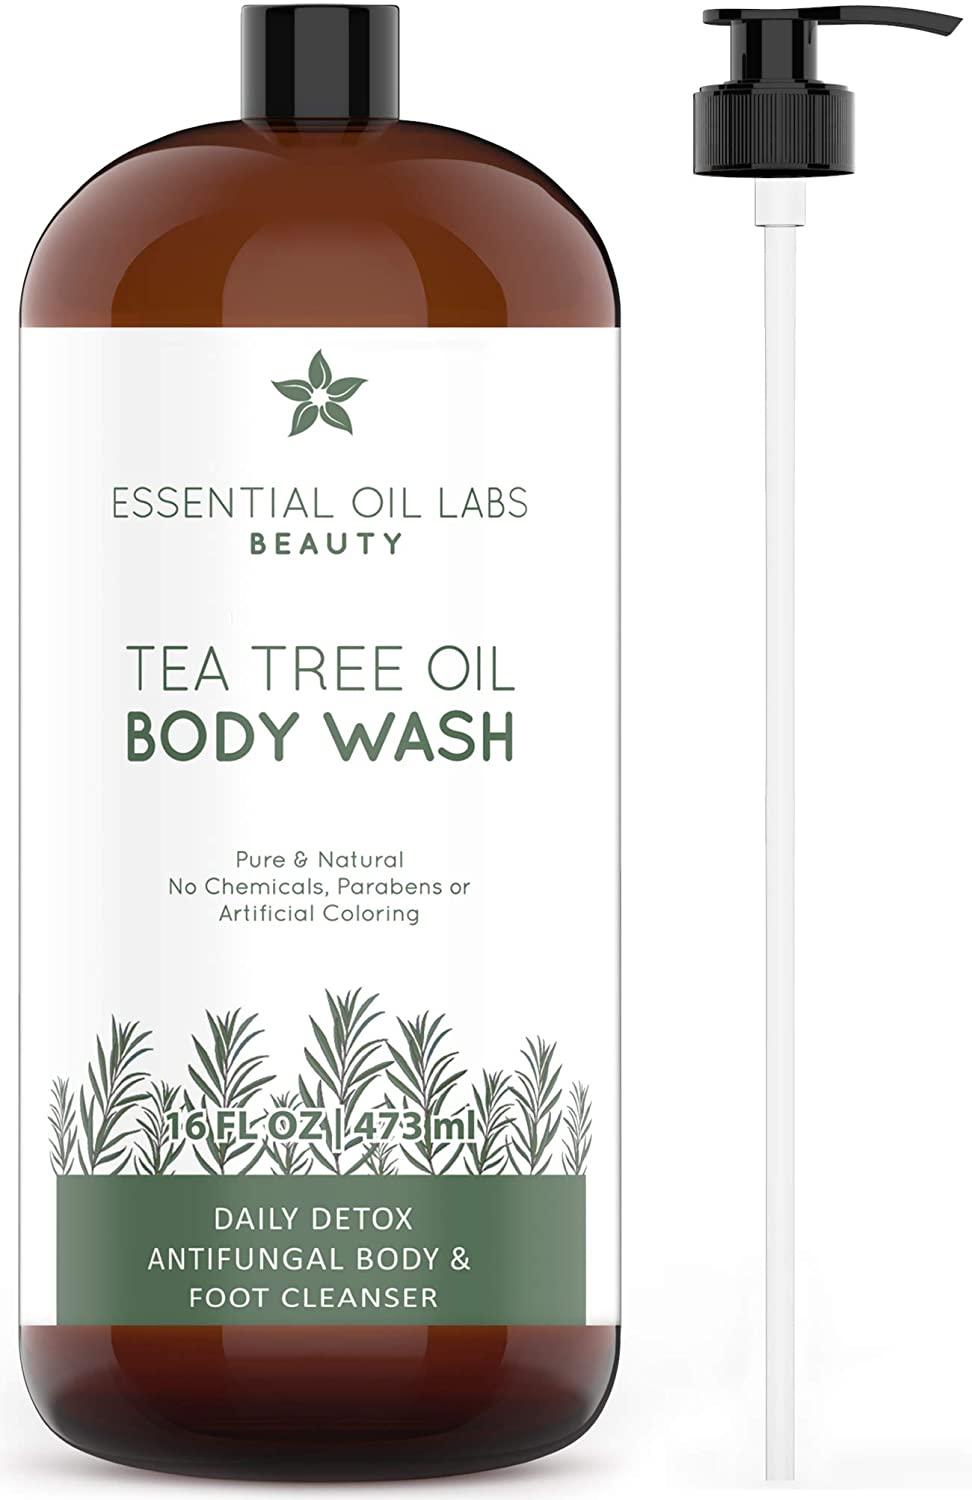 Essential Oil Labs Tea Tree Oil Body Wash